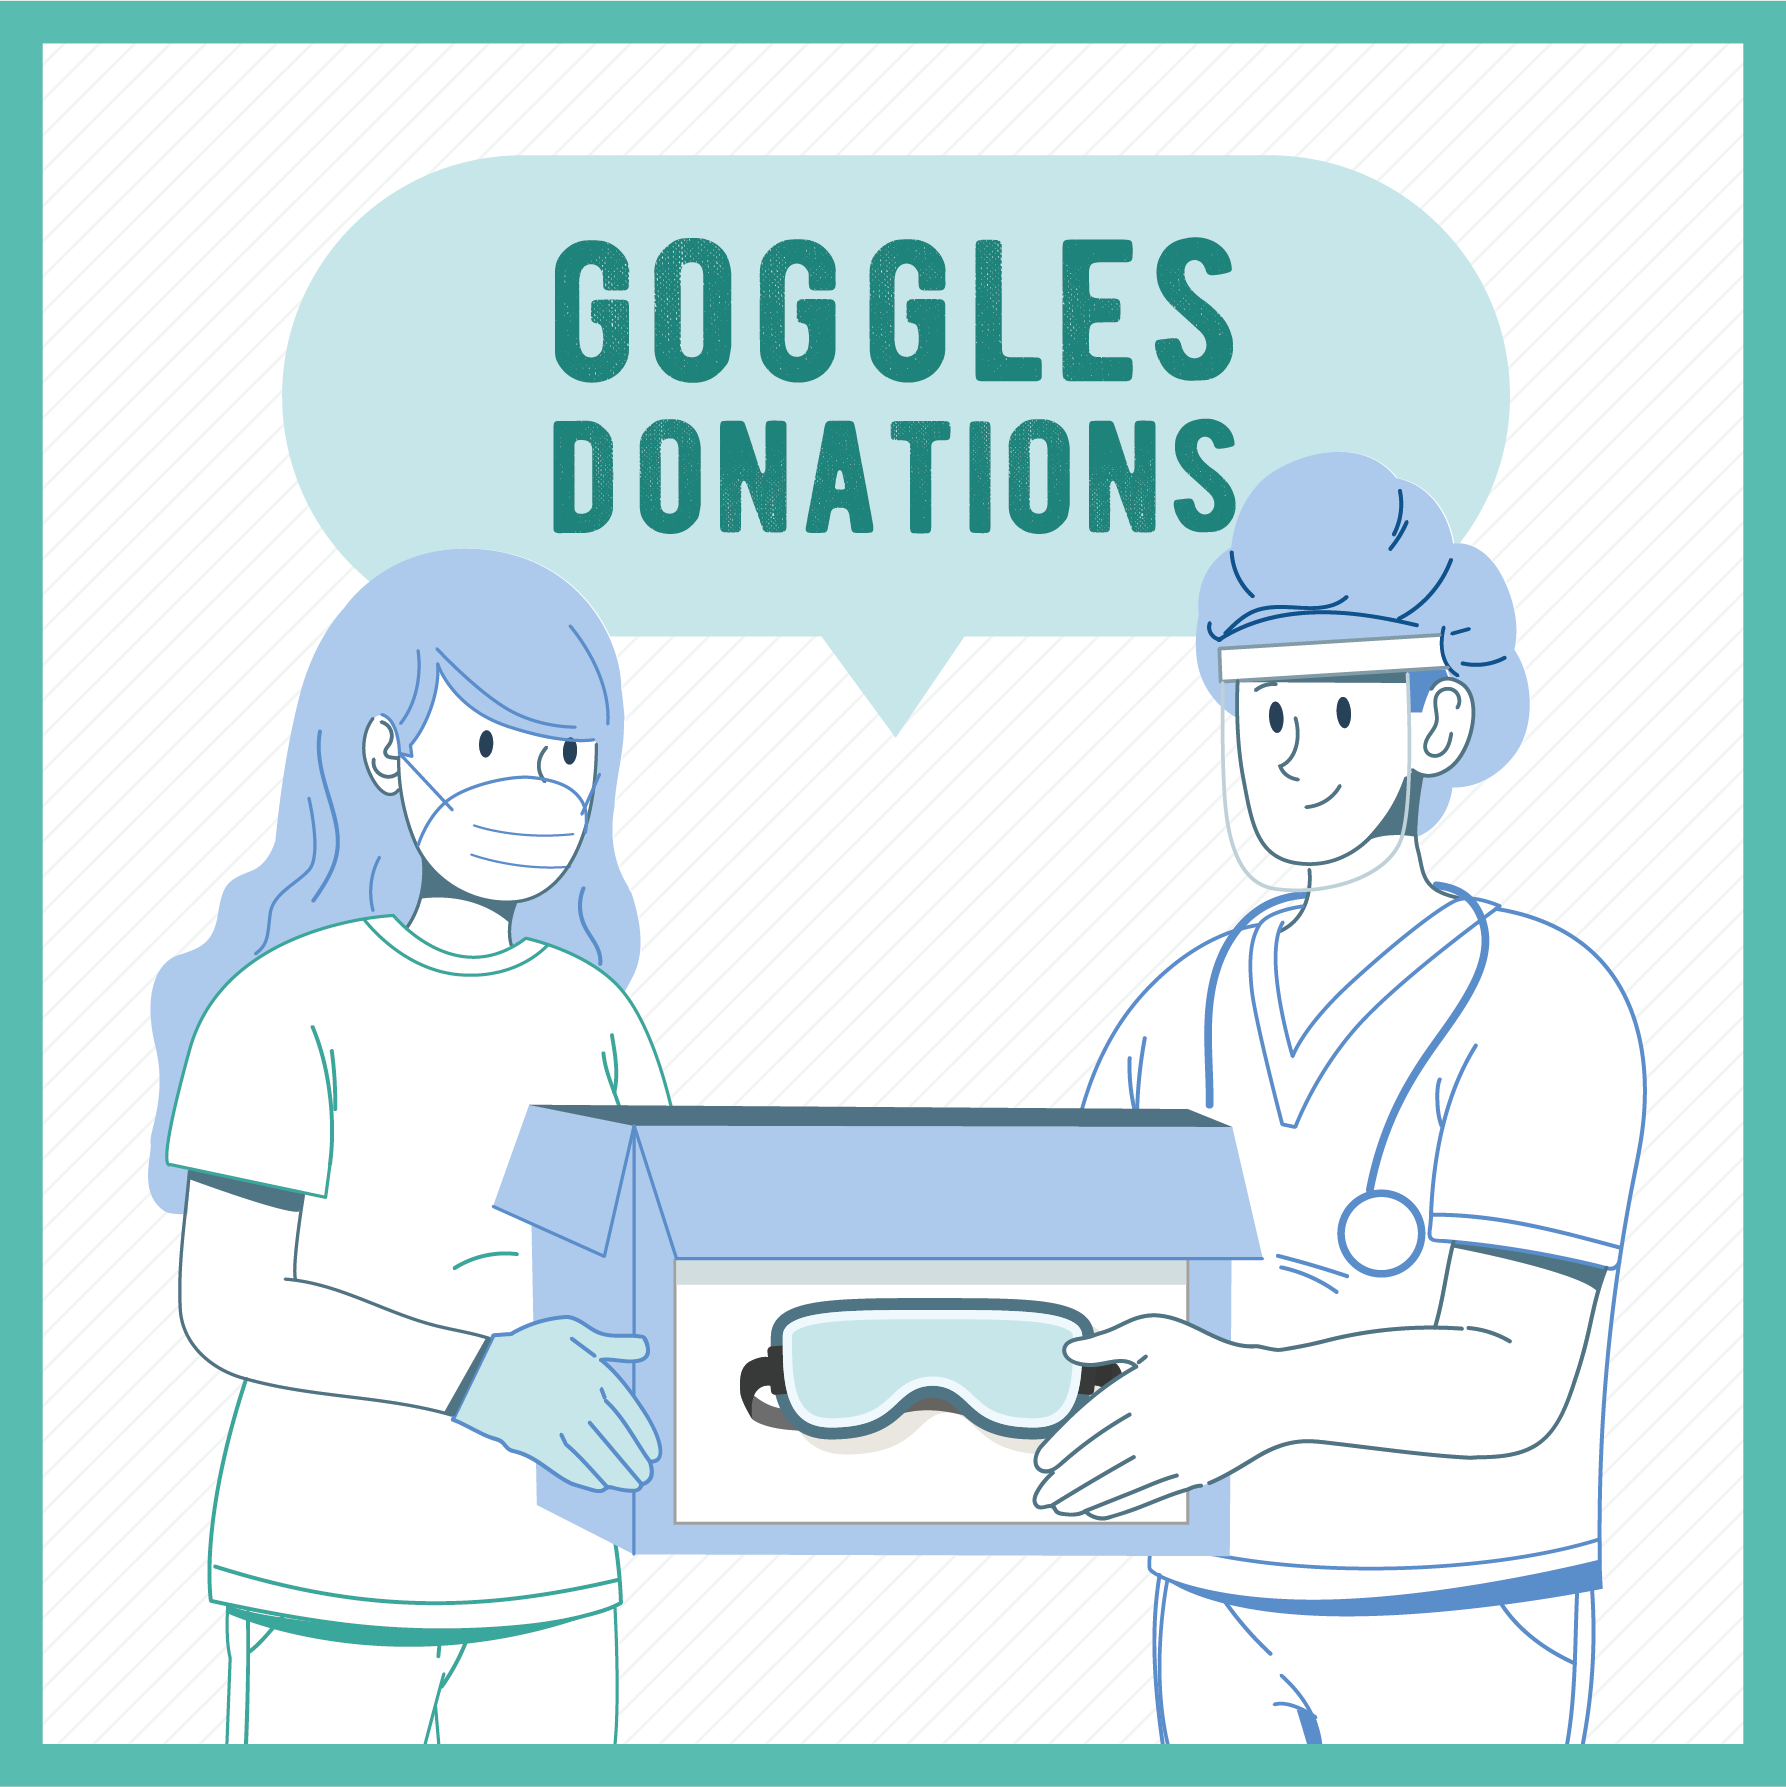 Goggles Donation To Our Medic Heros - Together ! We're STRONG